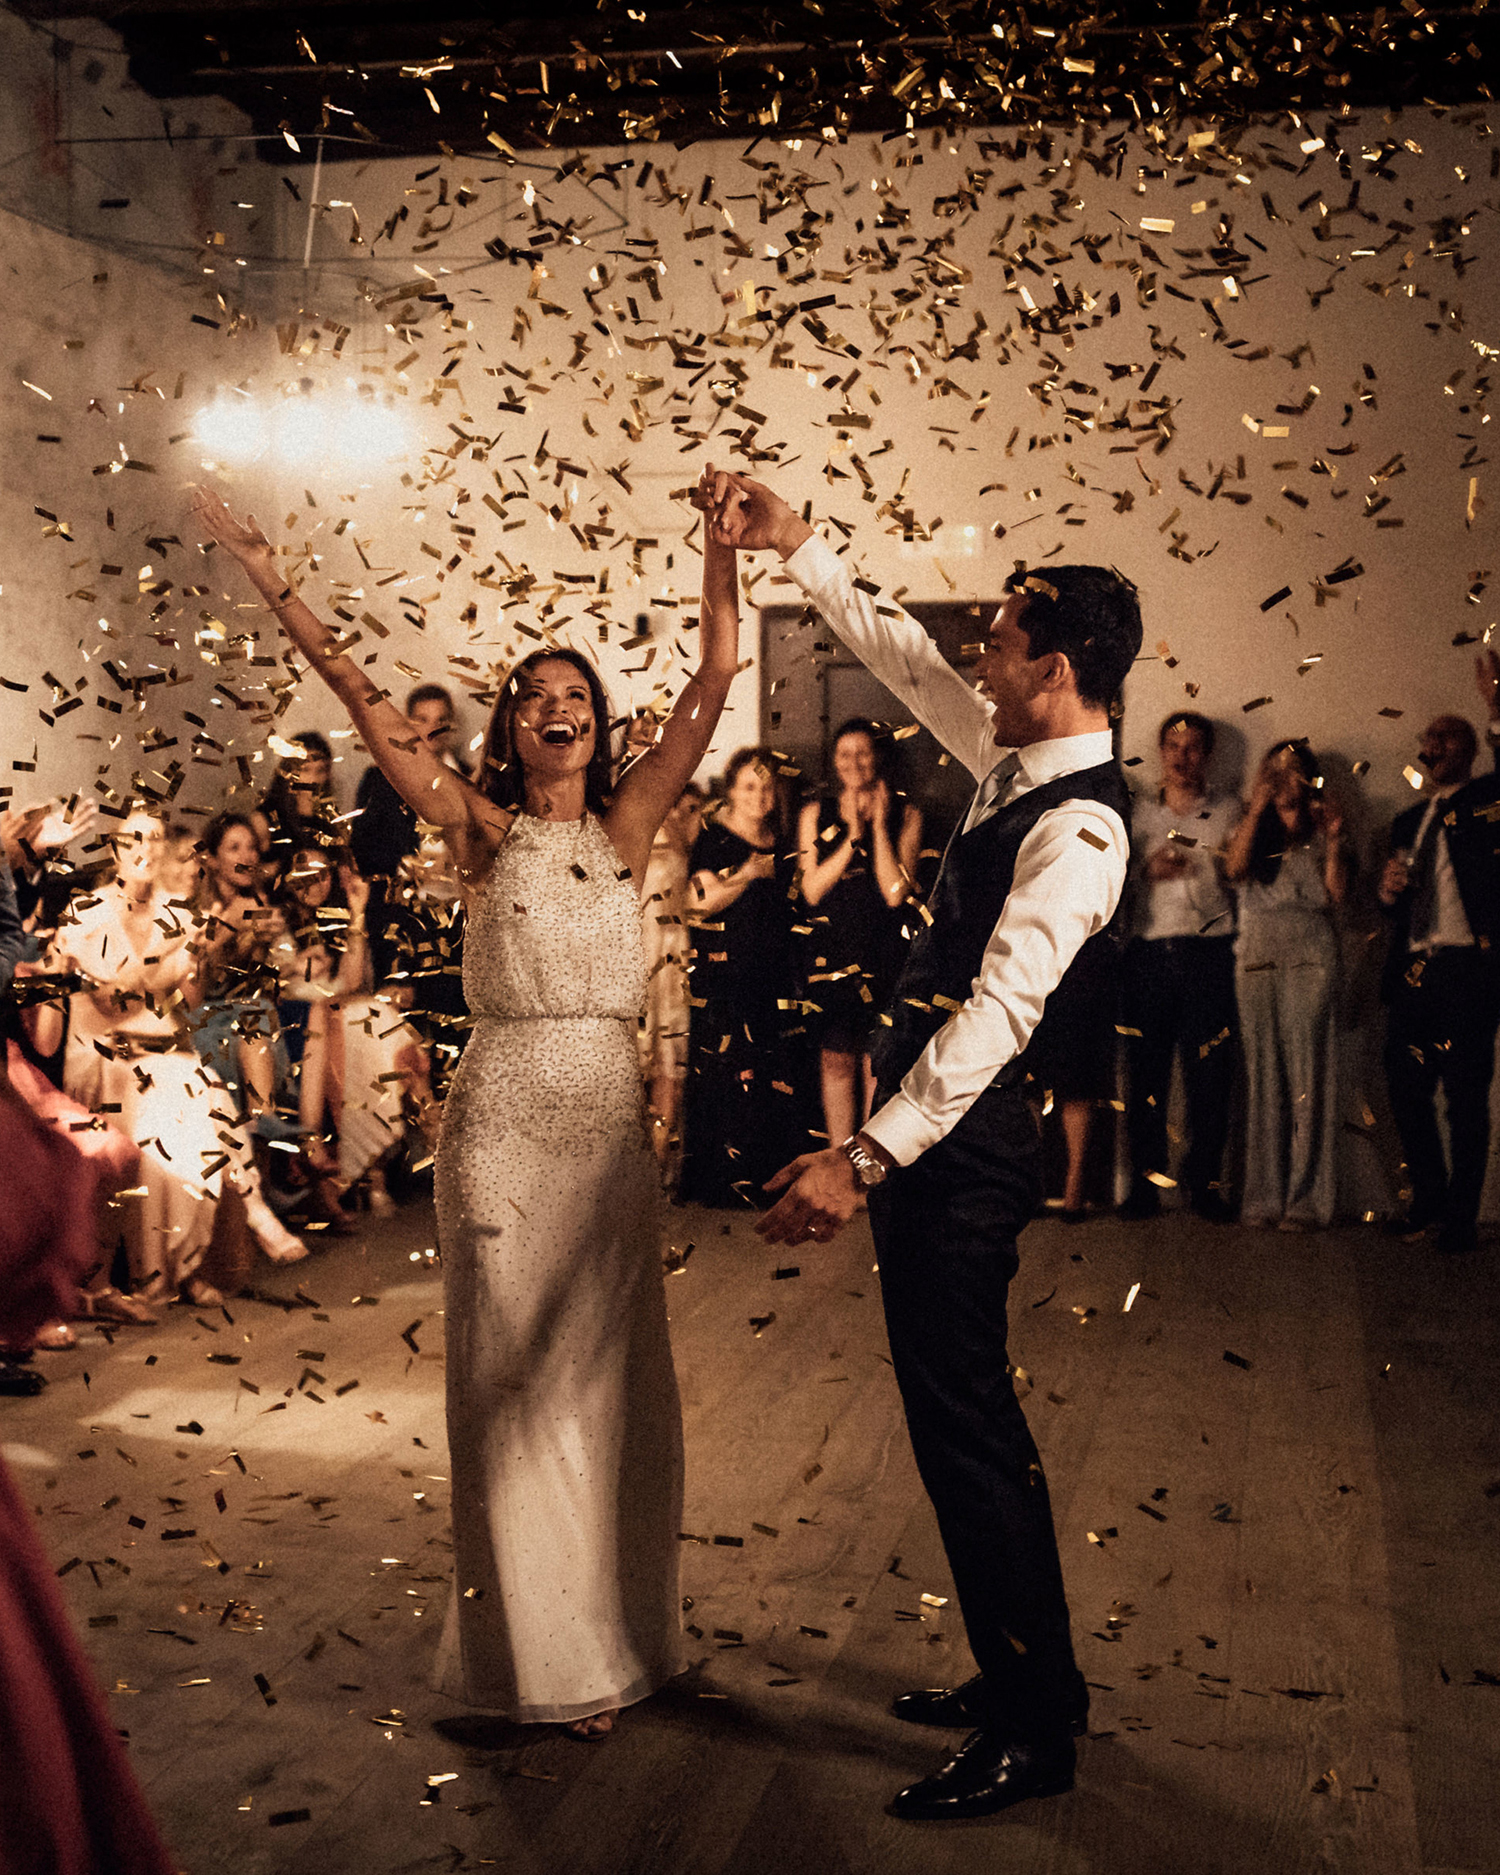 natalie paul wedding bride and groom reception golden confetti